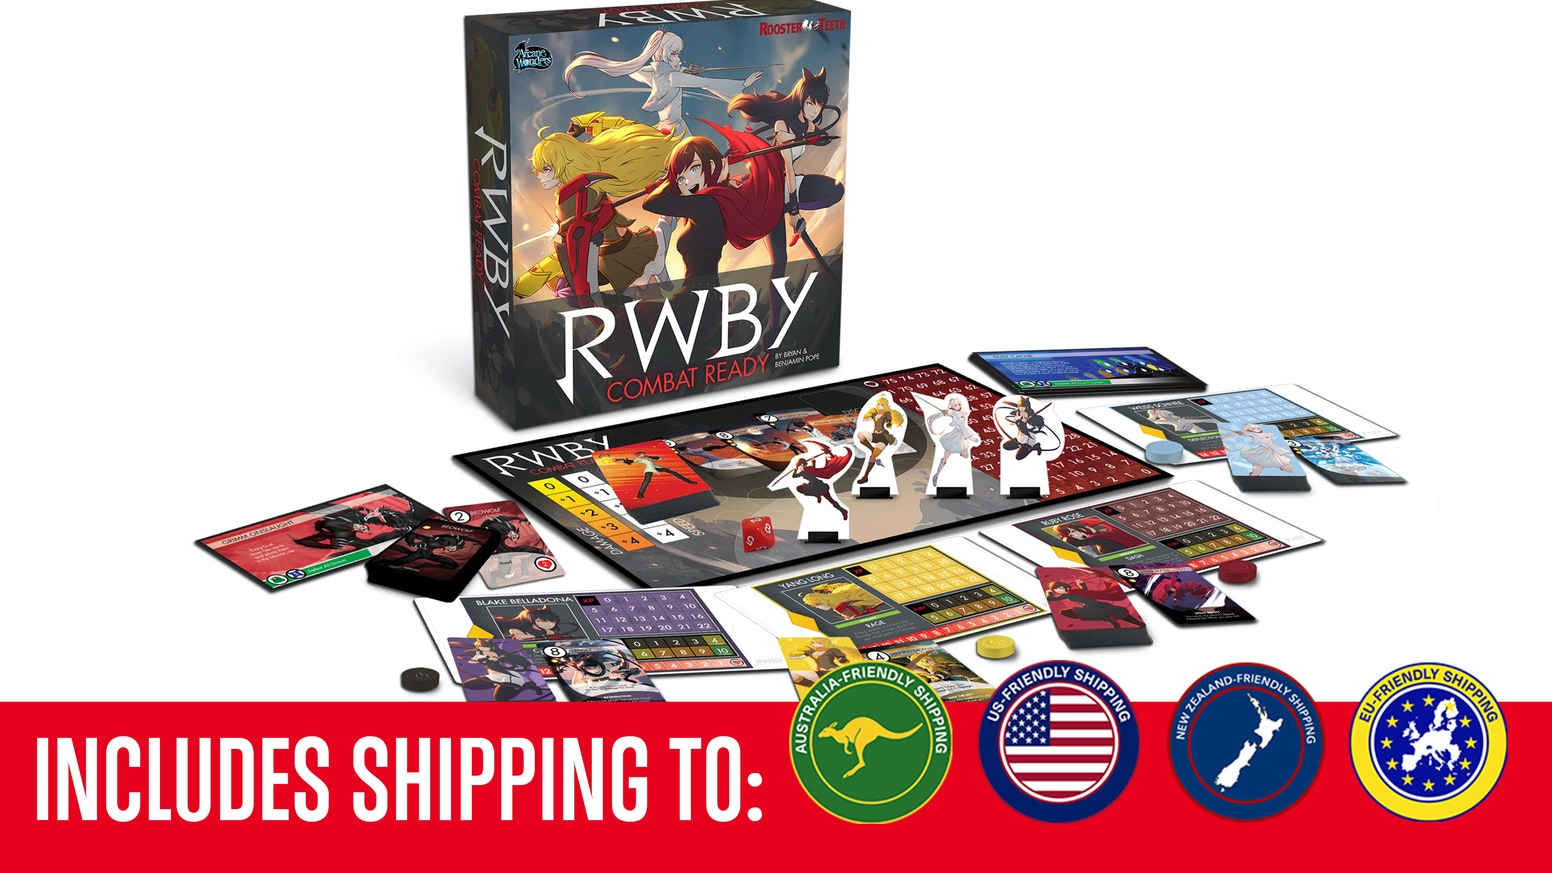 RWBY: Combat Ready is a cooperative board game where 2-4 players join forces to take on fierce RWBY villains and slay monstrous Grimm!